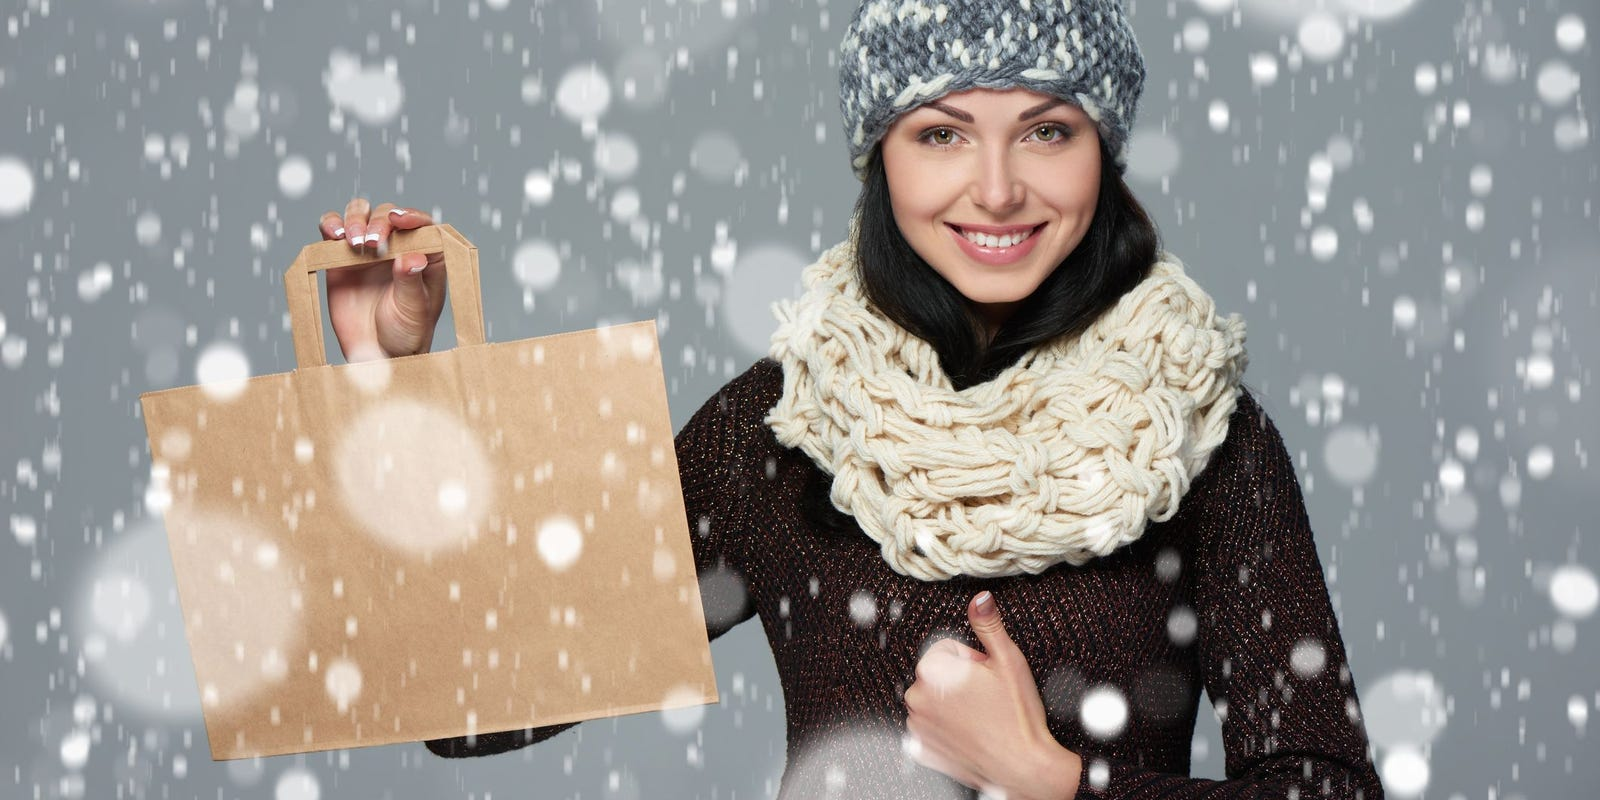 Holiday sales may slow as shoppers worry about COVID-19 and layoffs